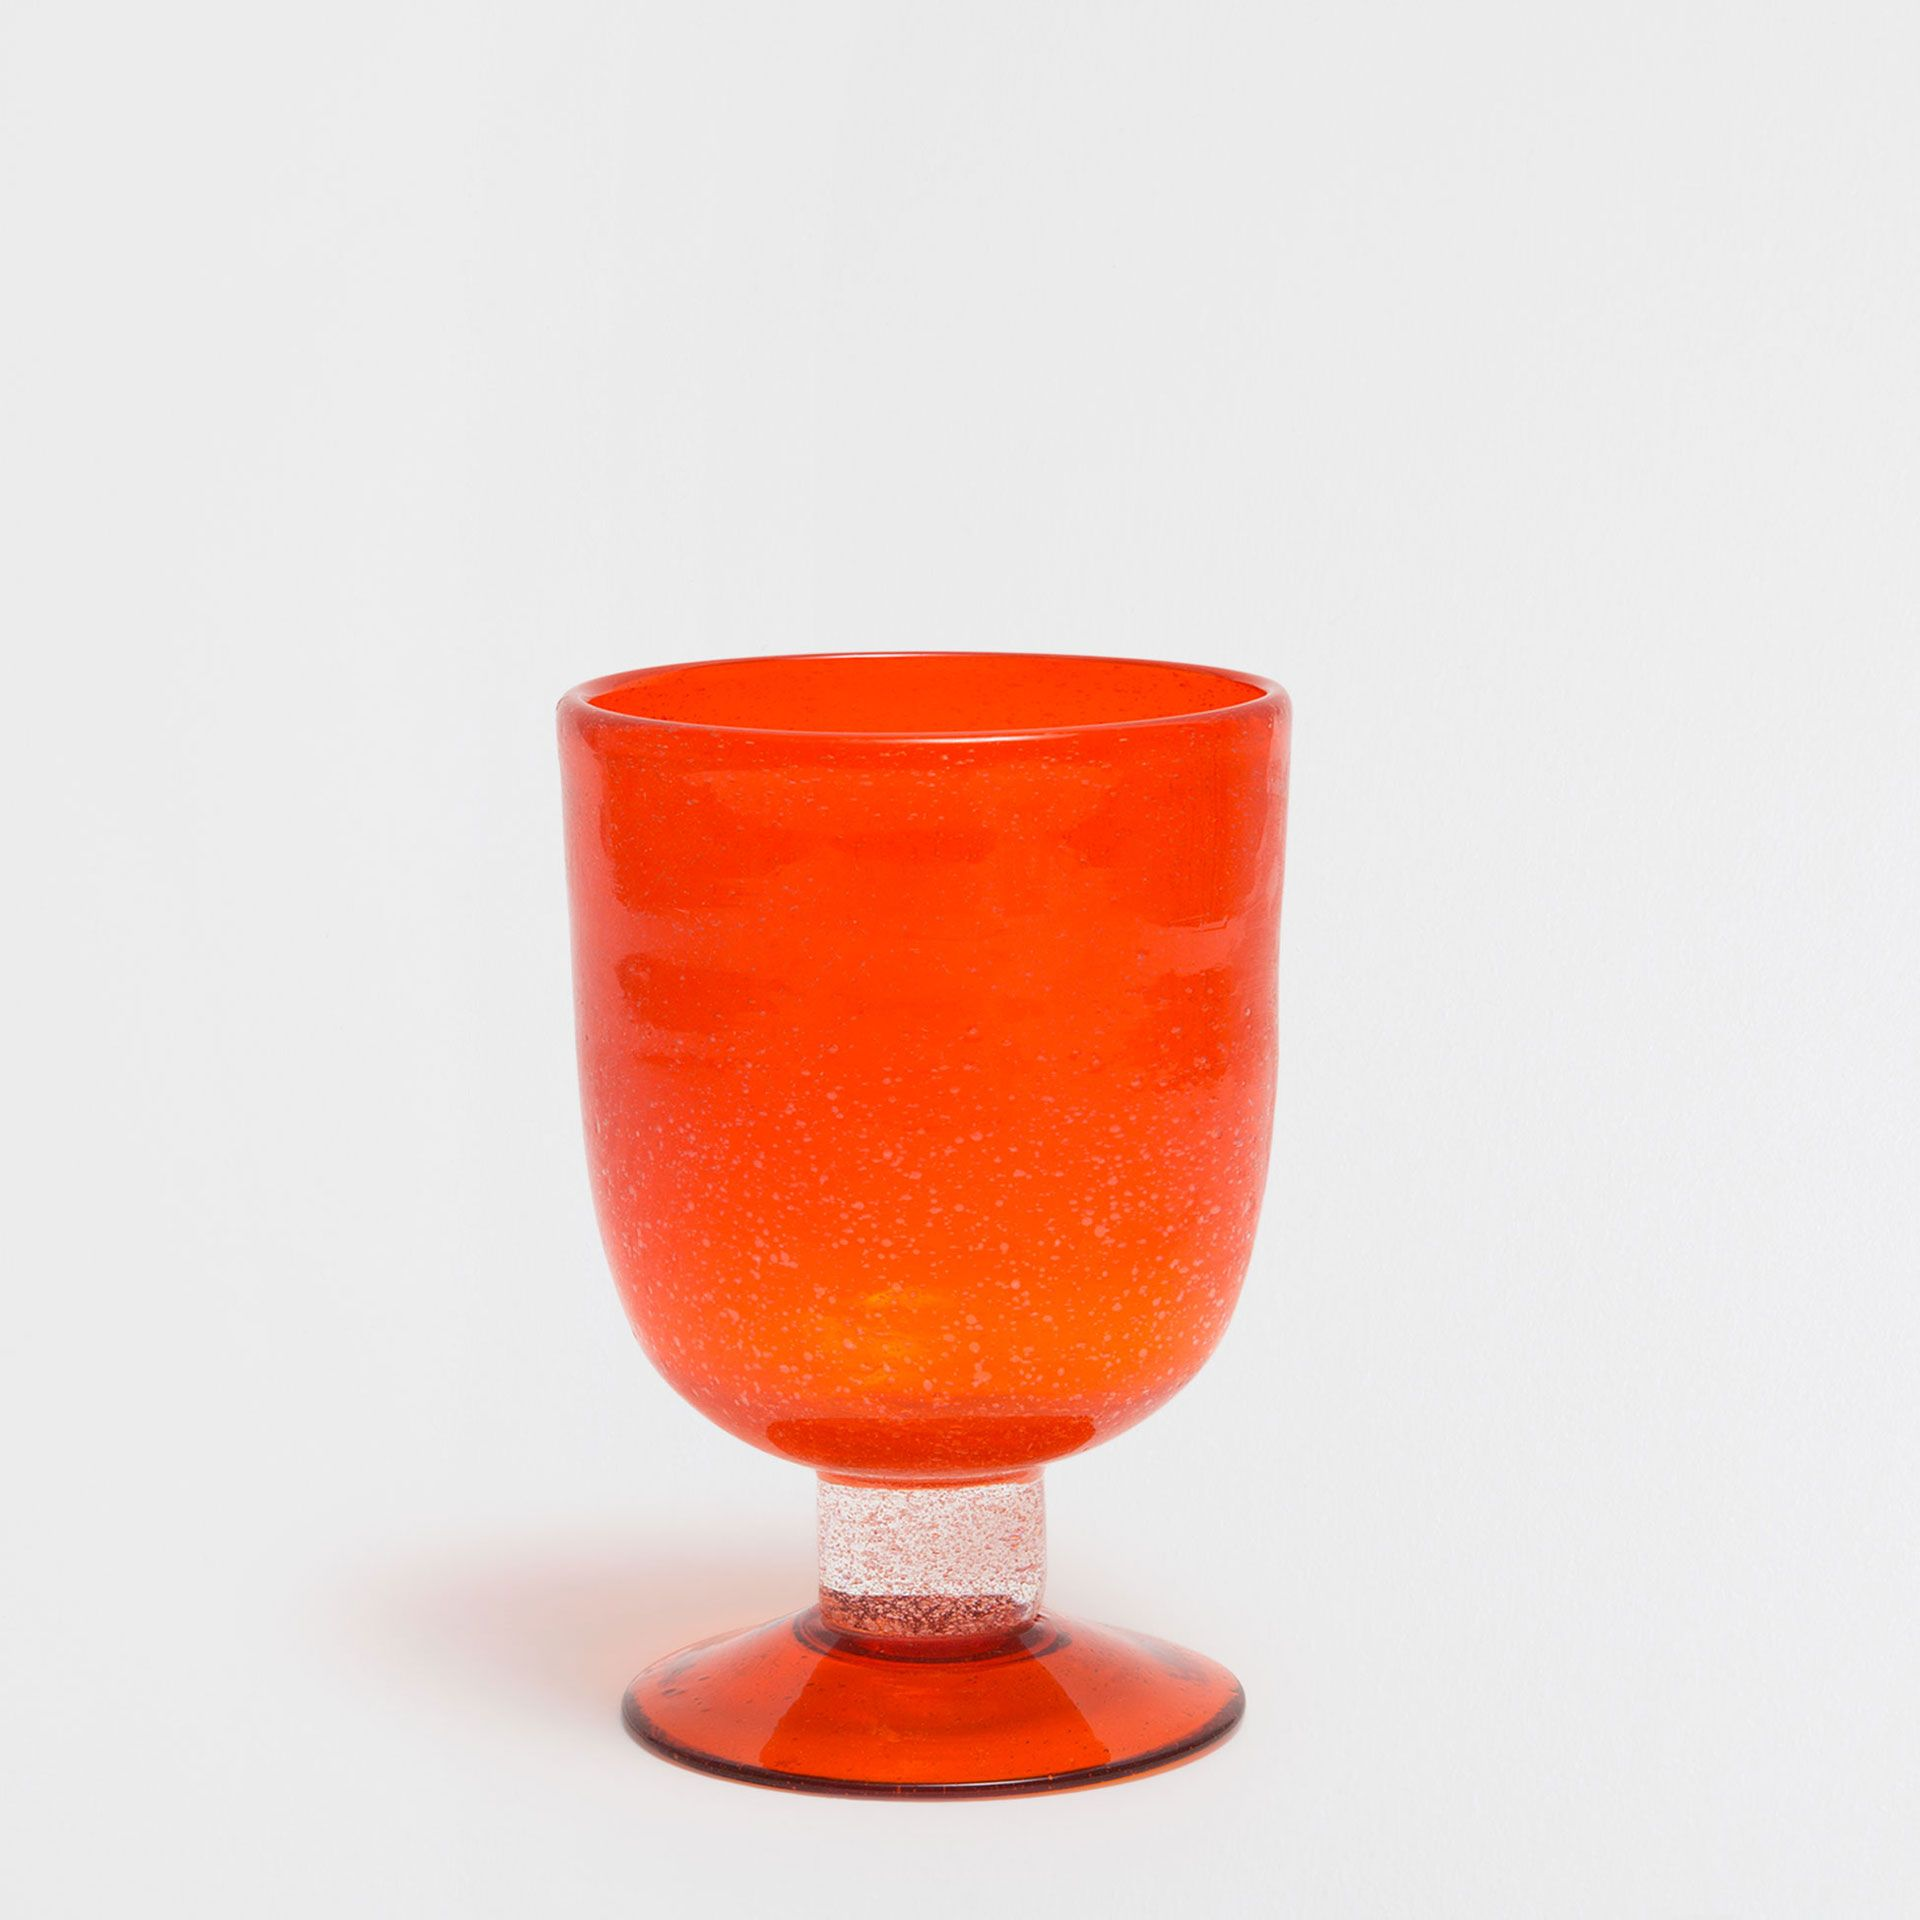 Image 1 Of The Product Orange Bubbles Wine Glass Orange Bubbles Glass Bubbles